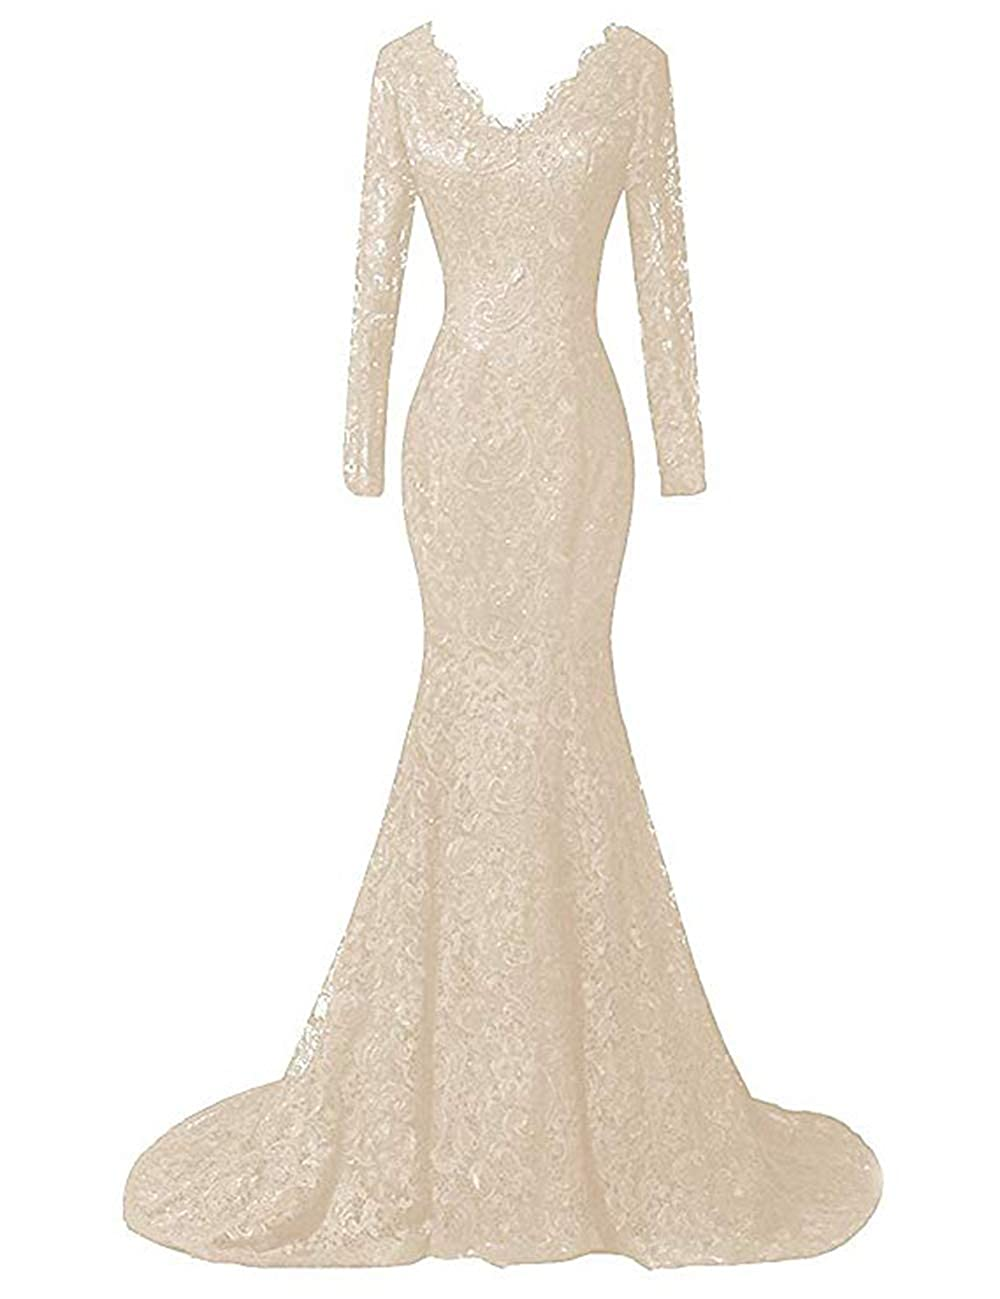 Champagne Ri Yun Women's Elegant Long Sleeves Lace Prom Dresses Mermaid VNeck Beaded Formal Evening Party Gowns